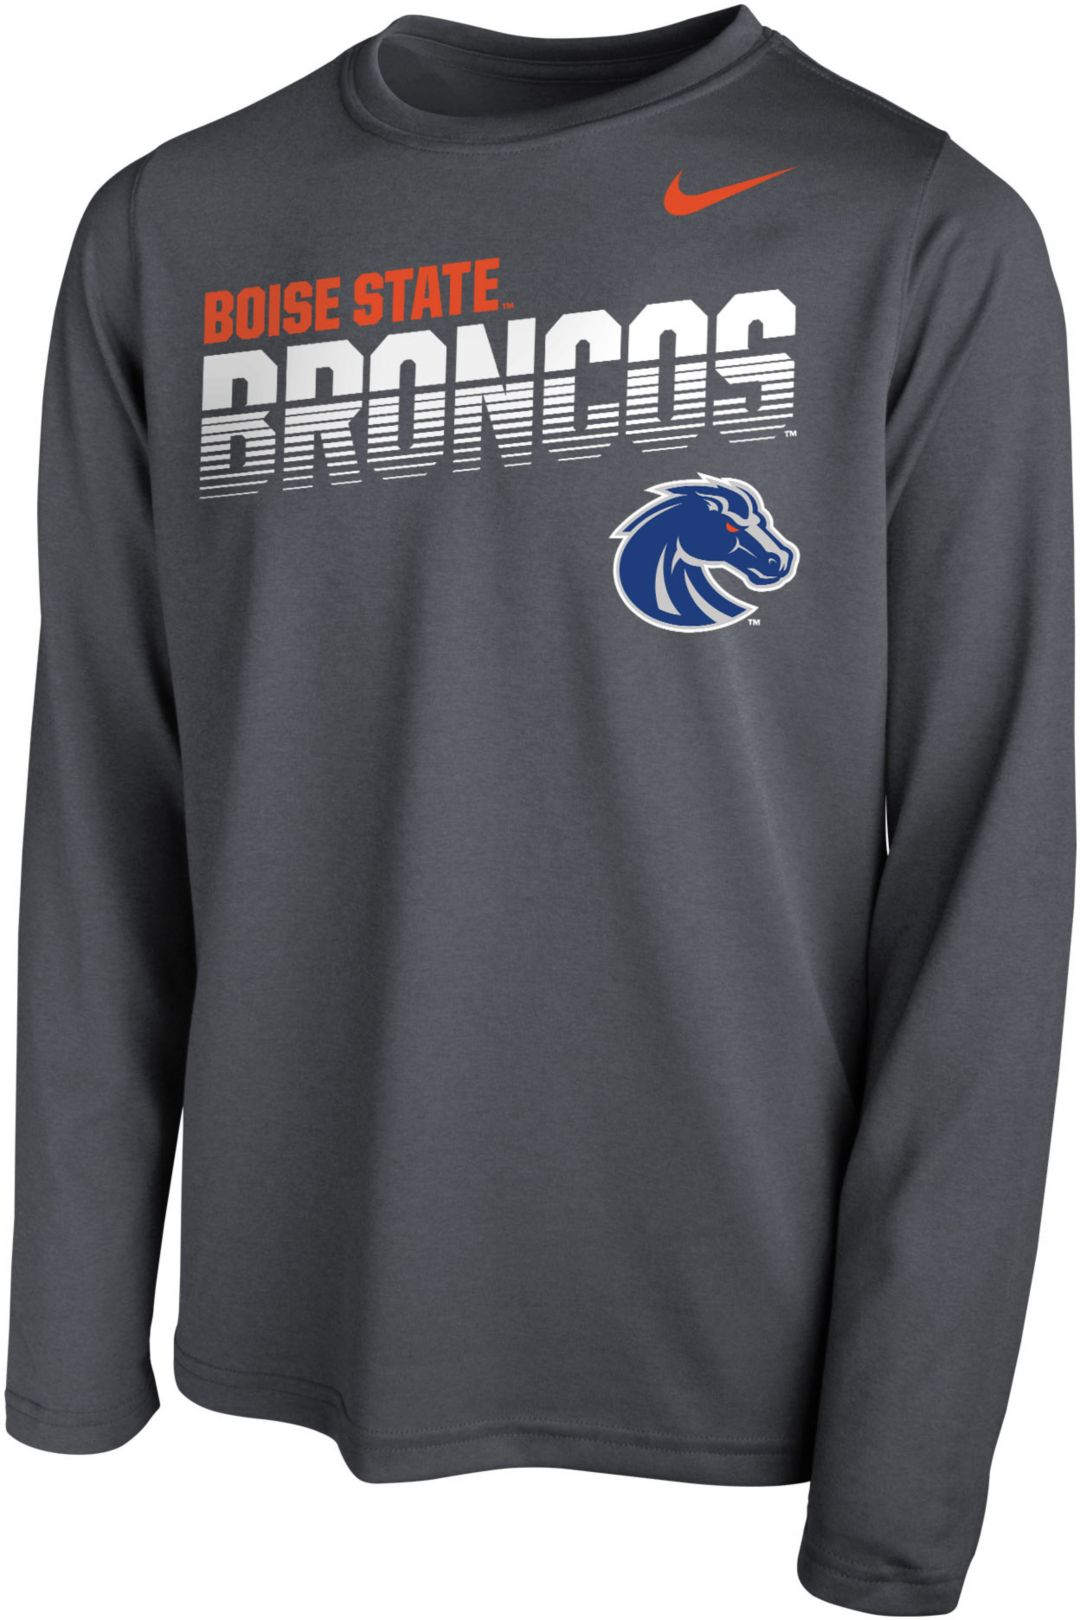 new product 7fc28 ed18d Nike Youth Boise State Broncos Grey Legend Football Sideline Long Sleeve  T-Shirt